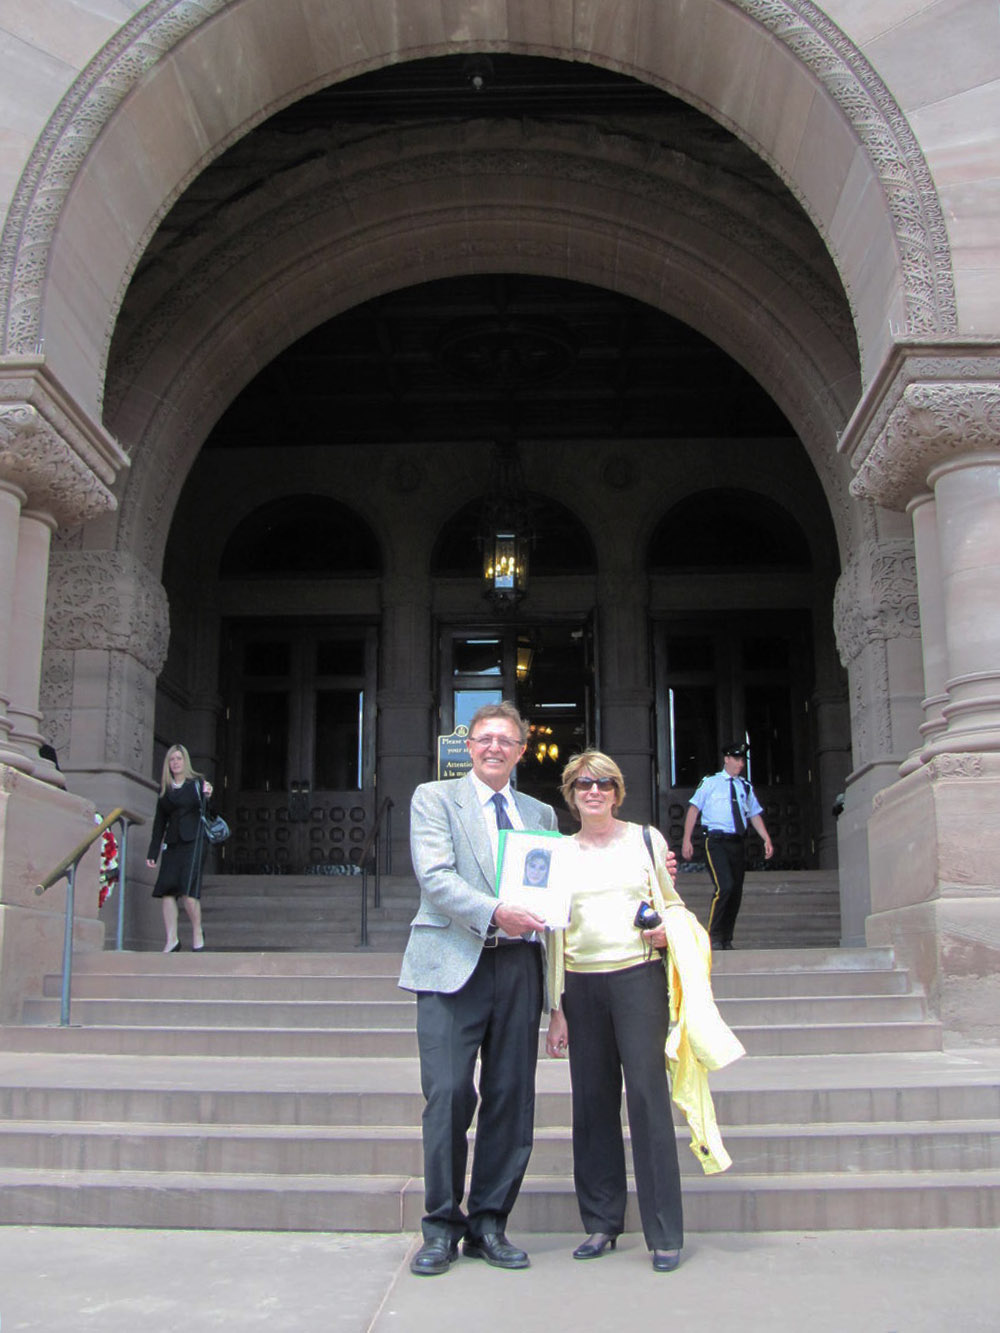 Ed and Dawn Novak present their document at Queen's Park, 2010.